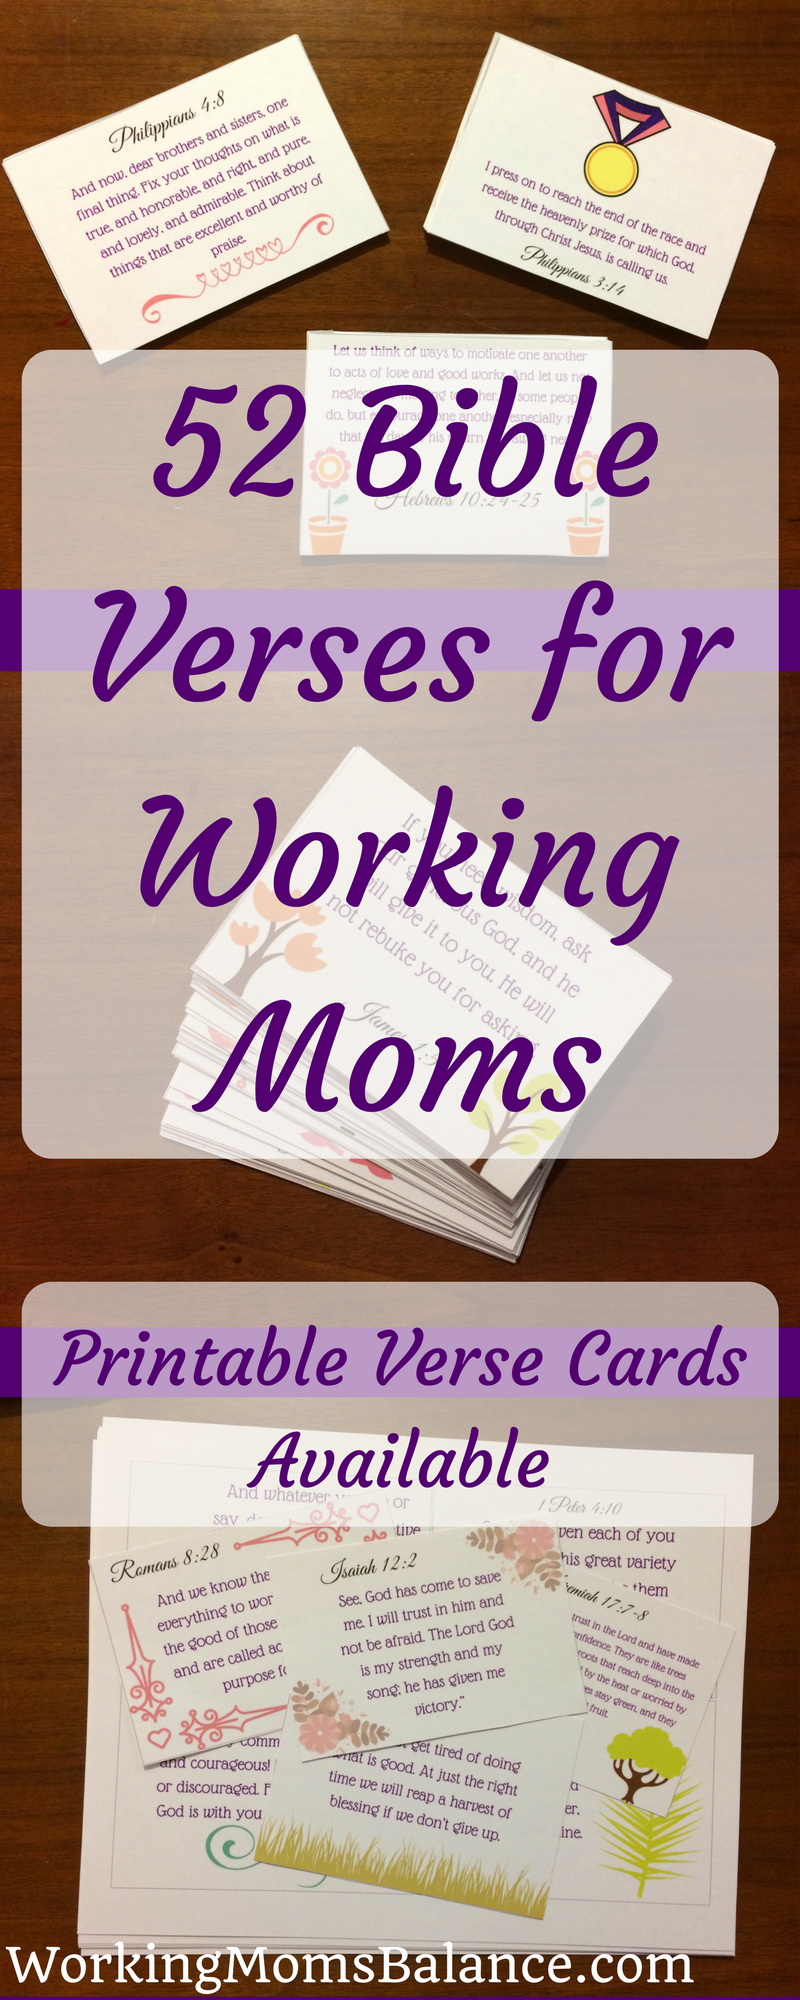 52 Bible Verses for Working Moms - Working Mom's Balance